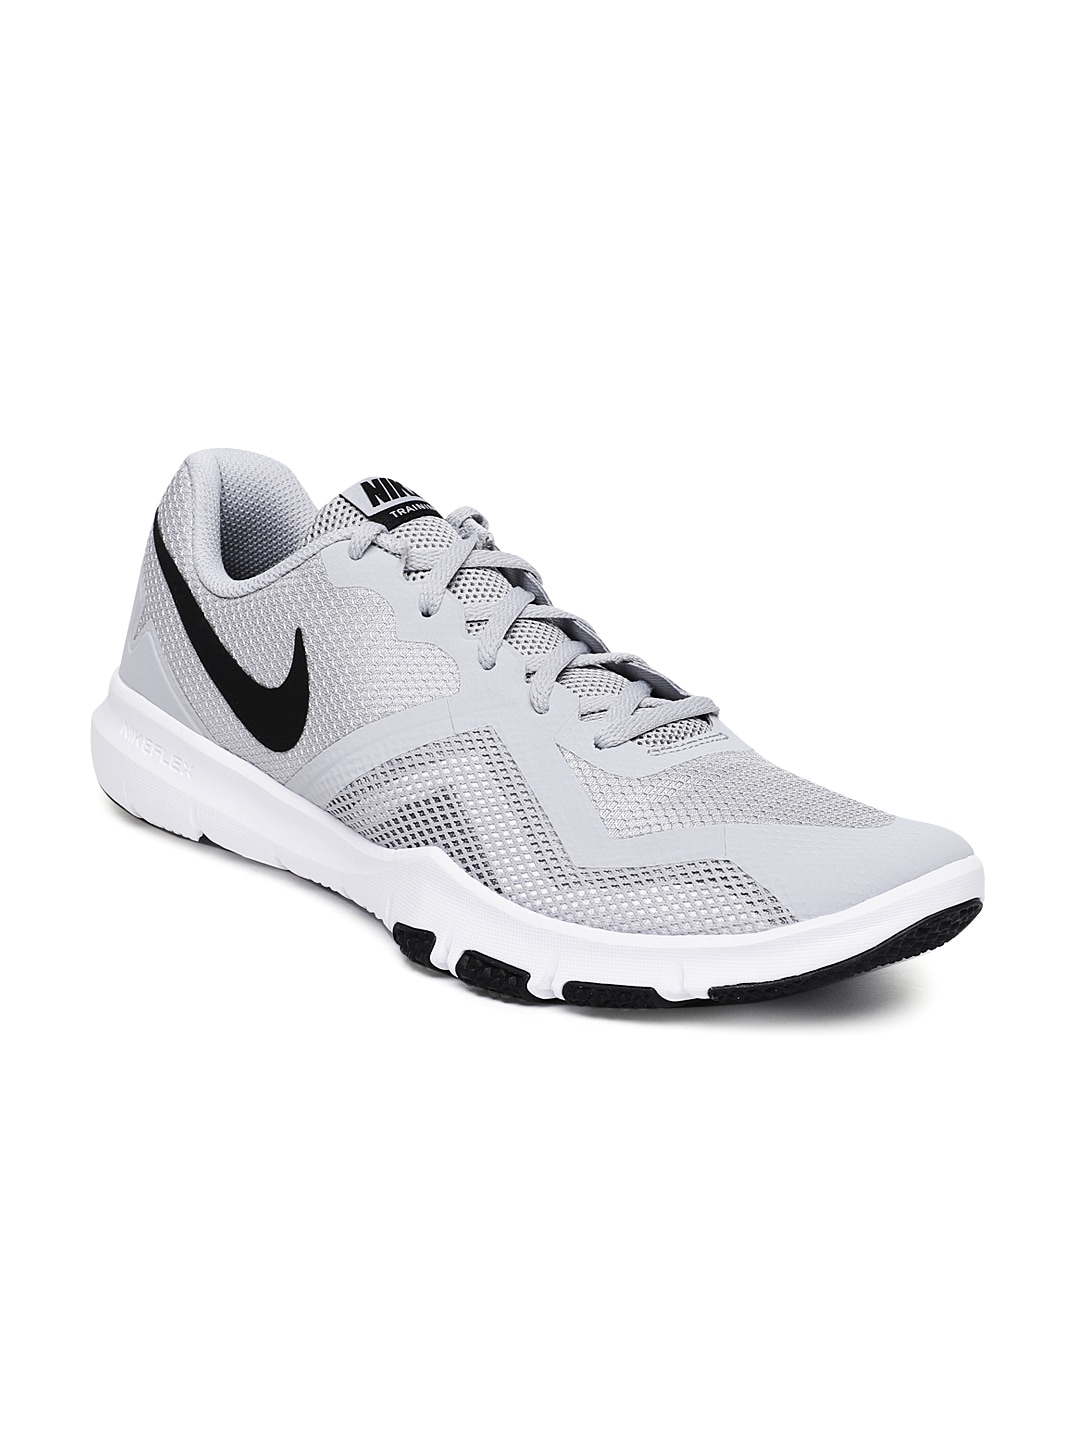 b6675af3a8b1 Sports Shoes - Buy Sport Shoes For Men   Women Online